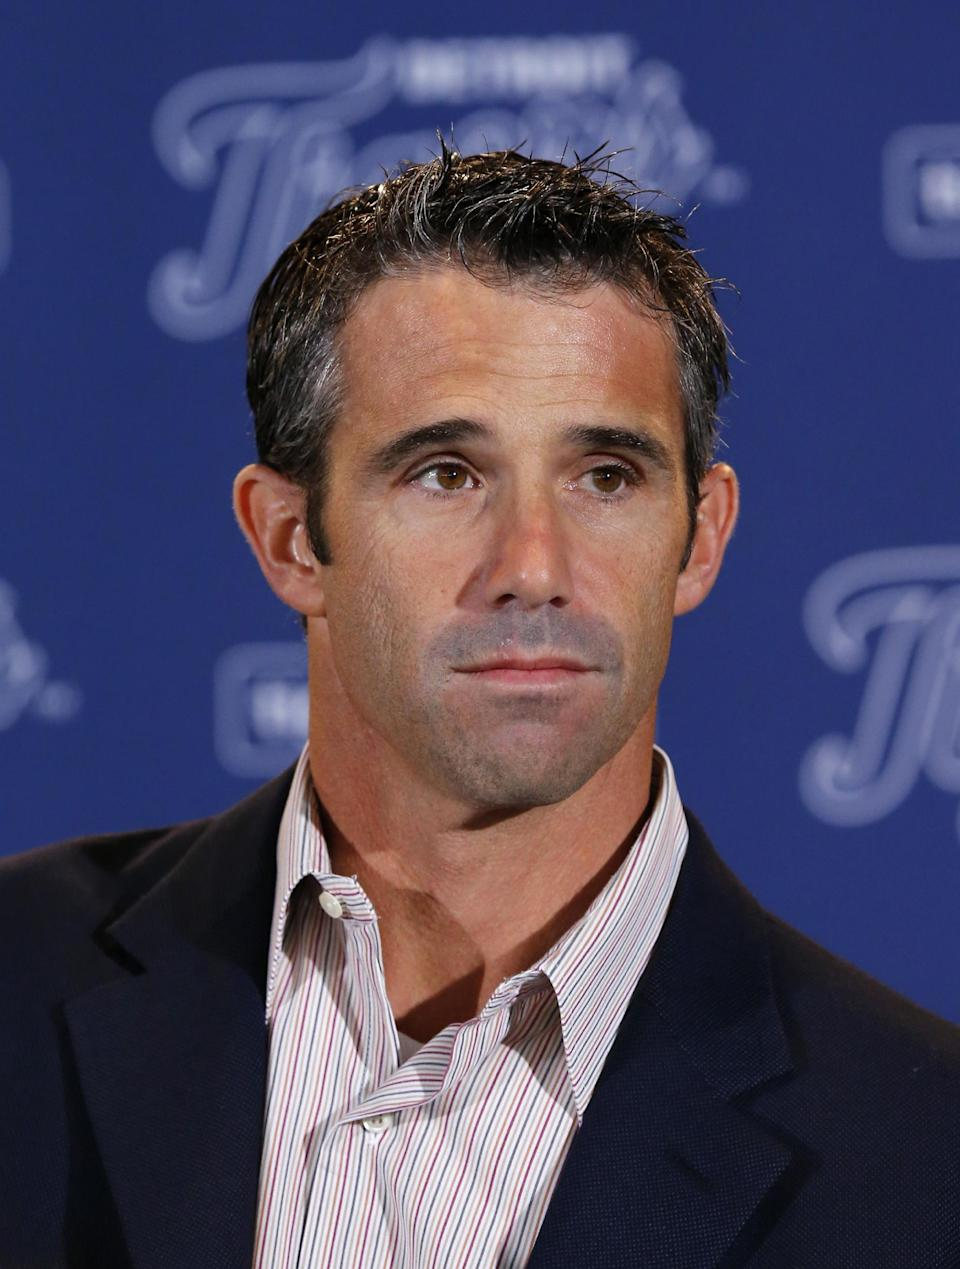 Detroit Tigers hire Brad Ausmus as manager